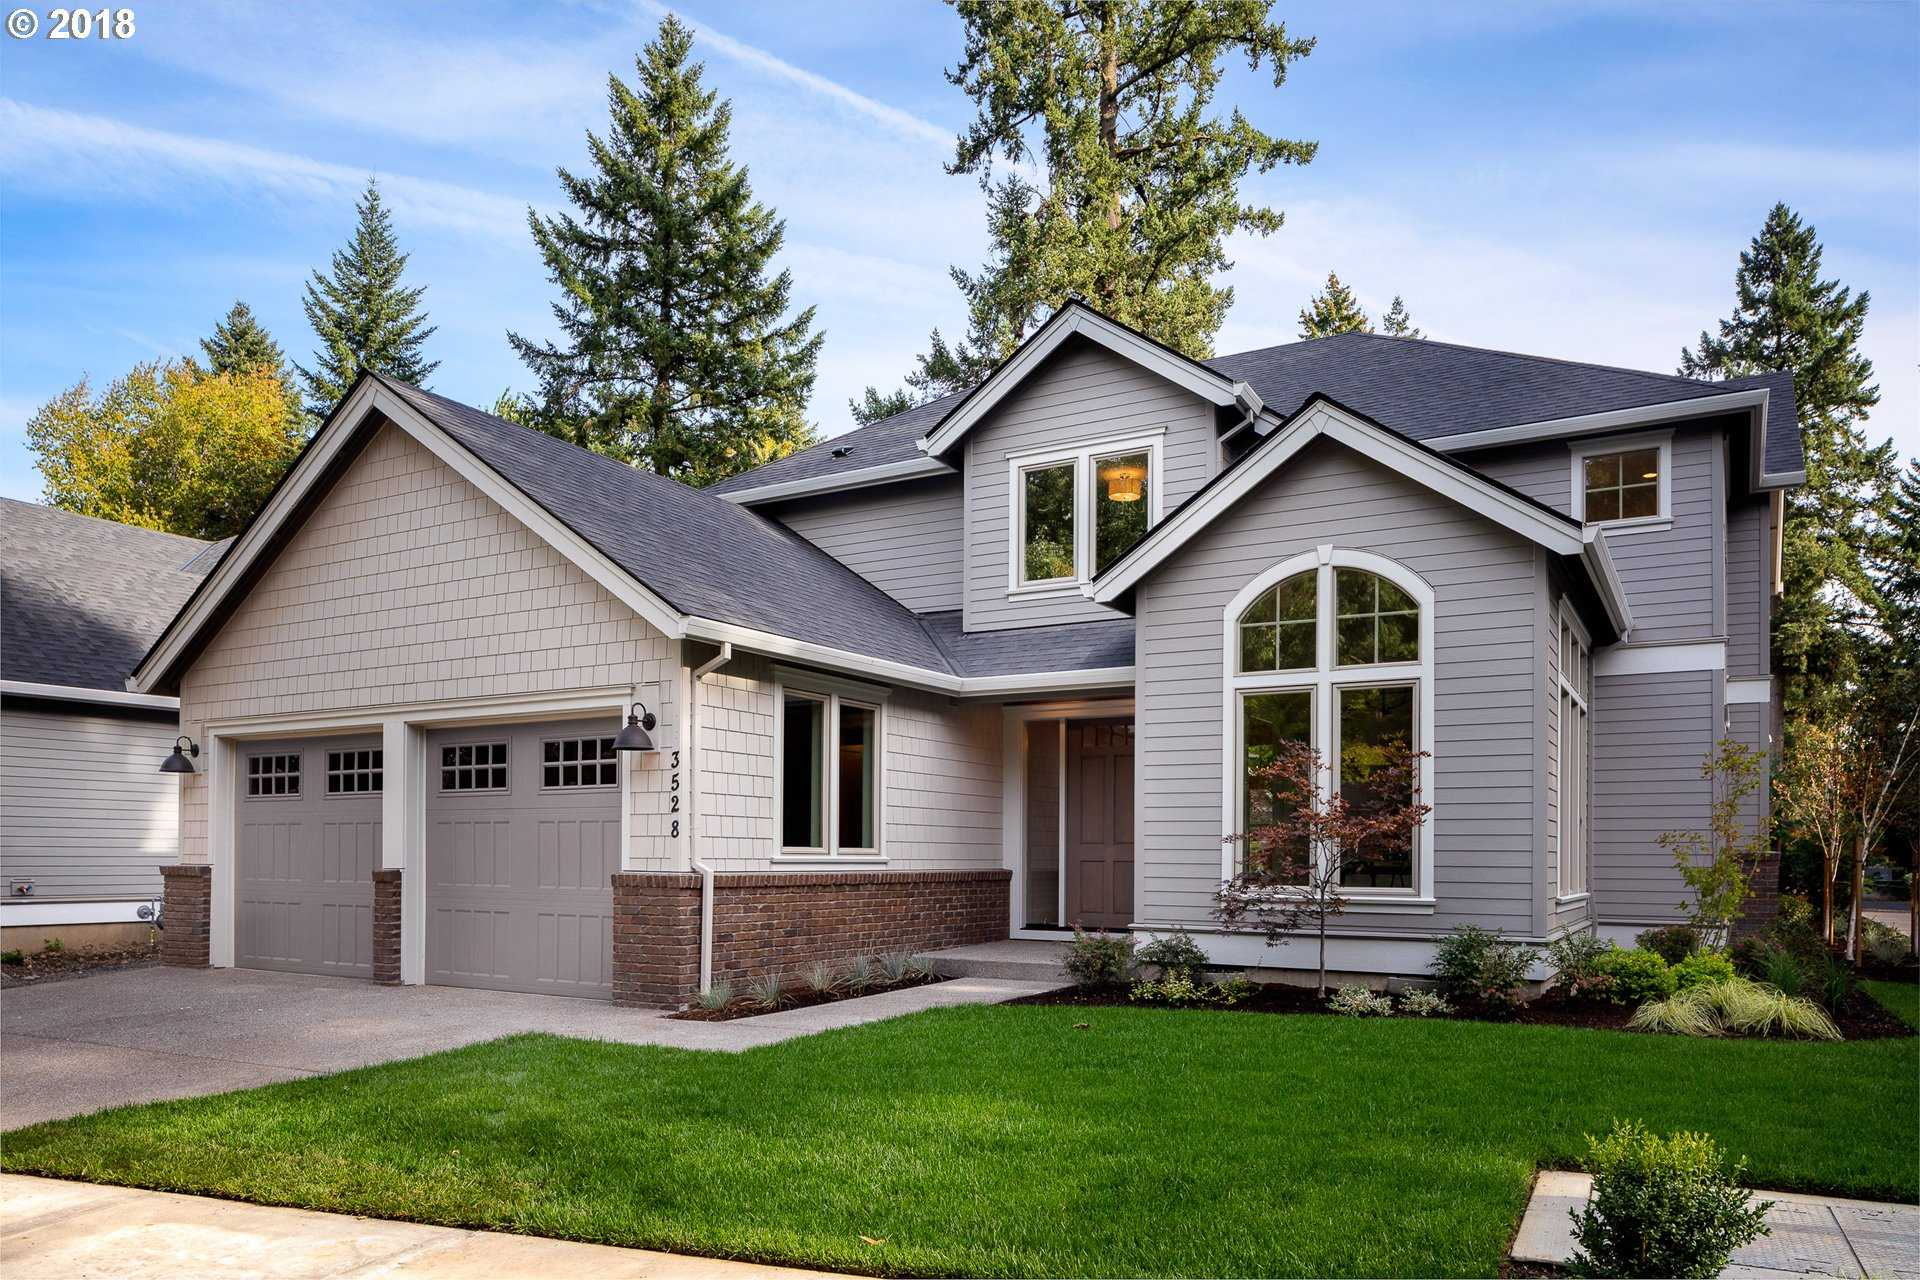 $1,059,500 - 3Br/3Ba -  for Sale in West Linn